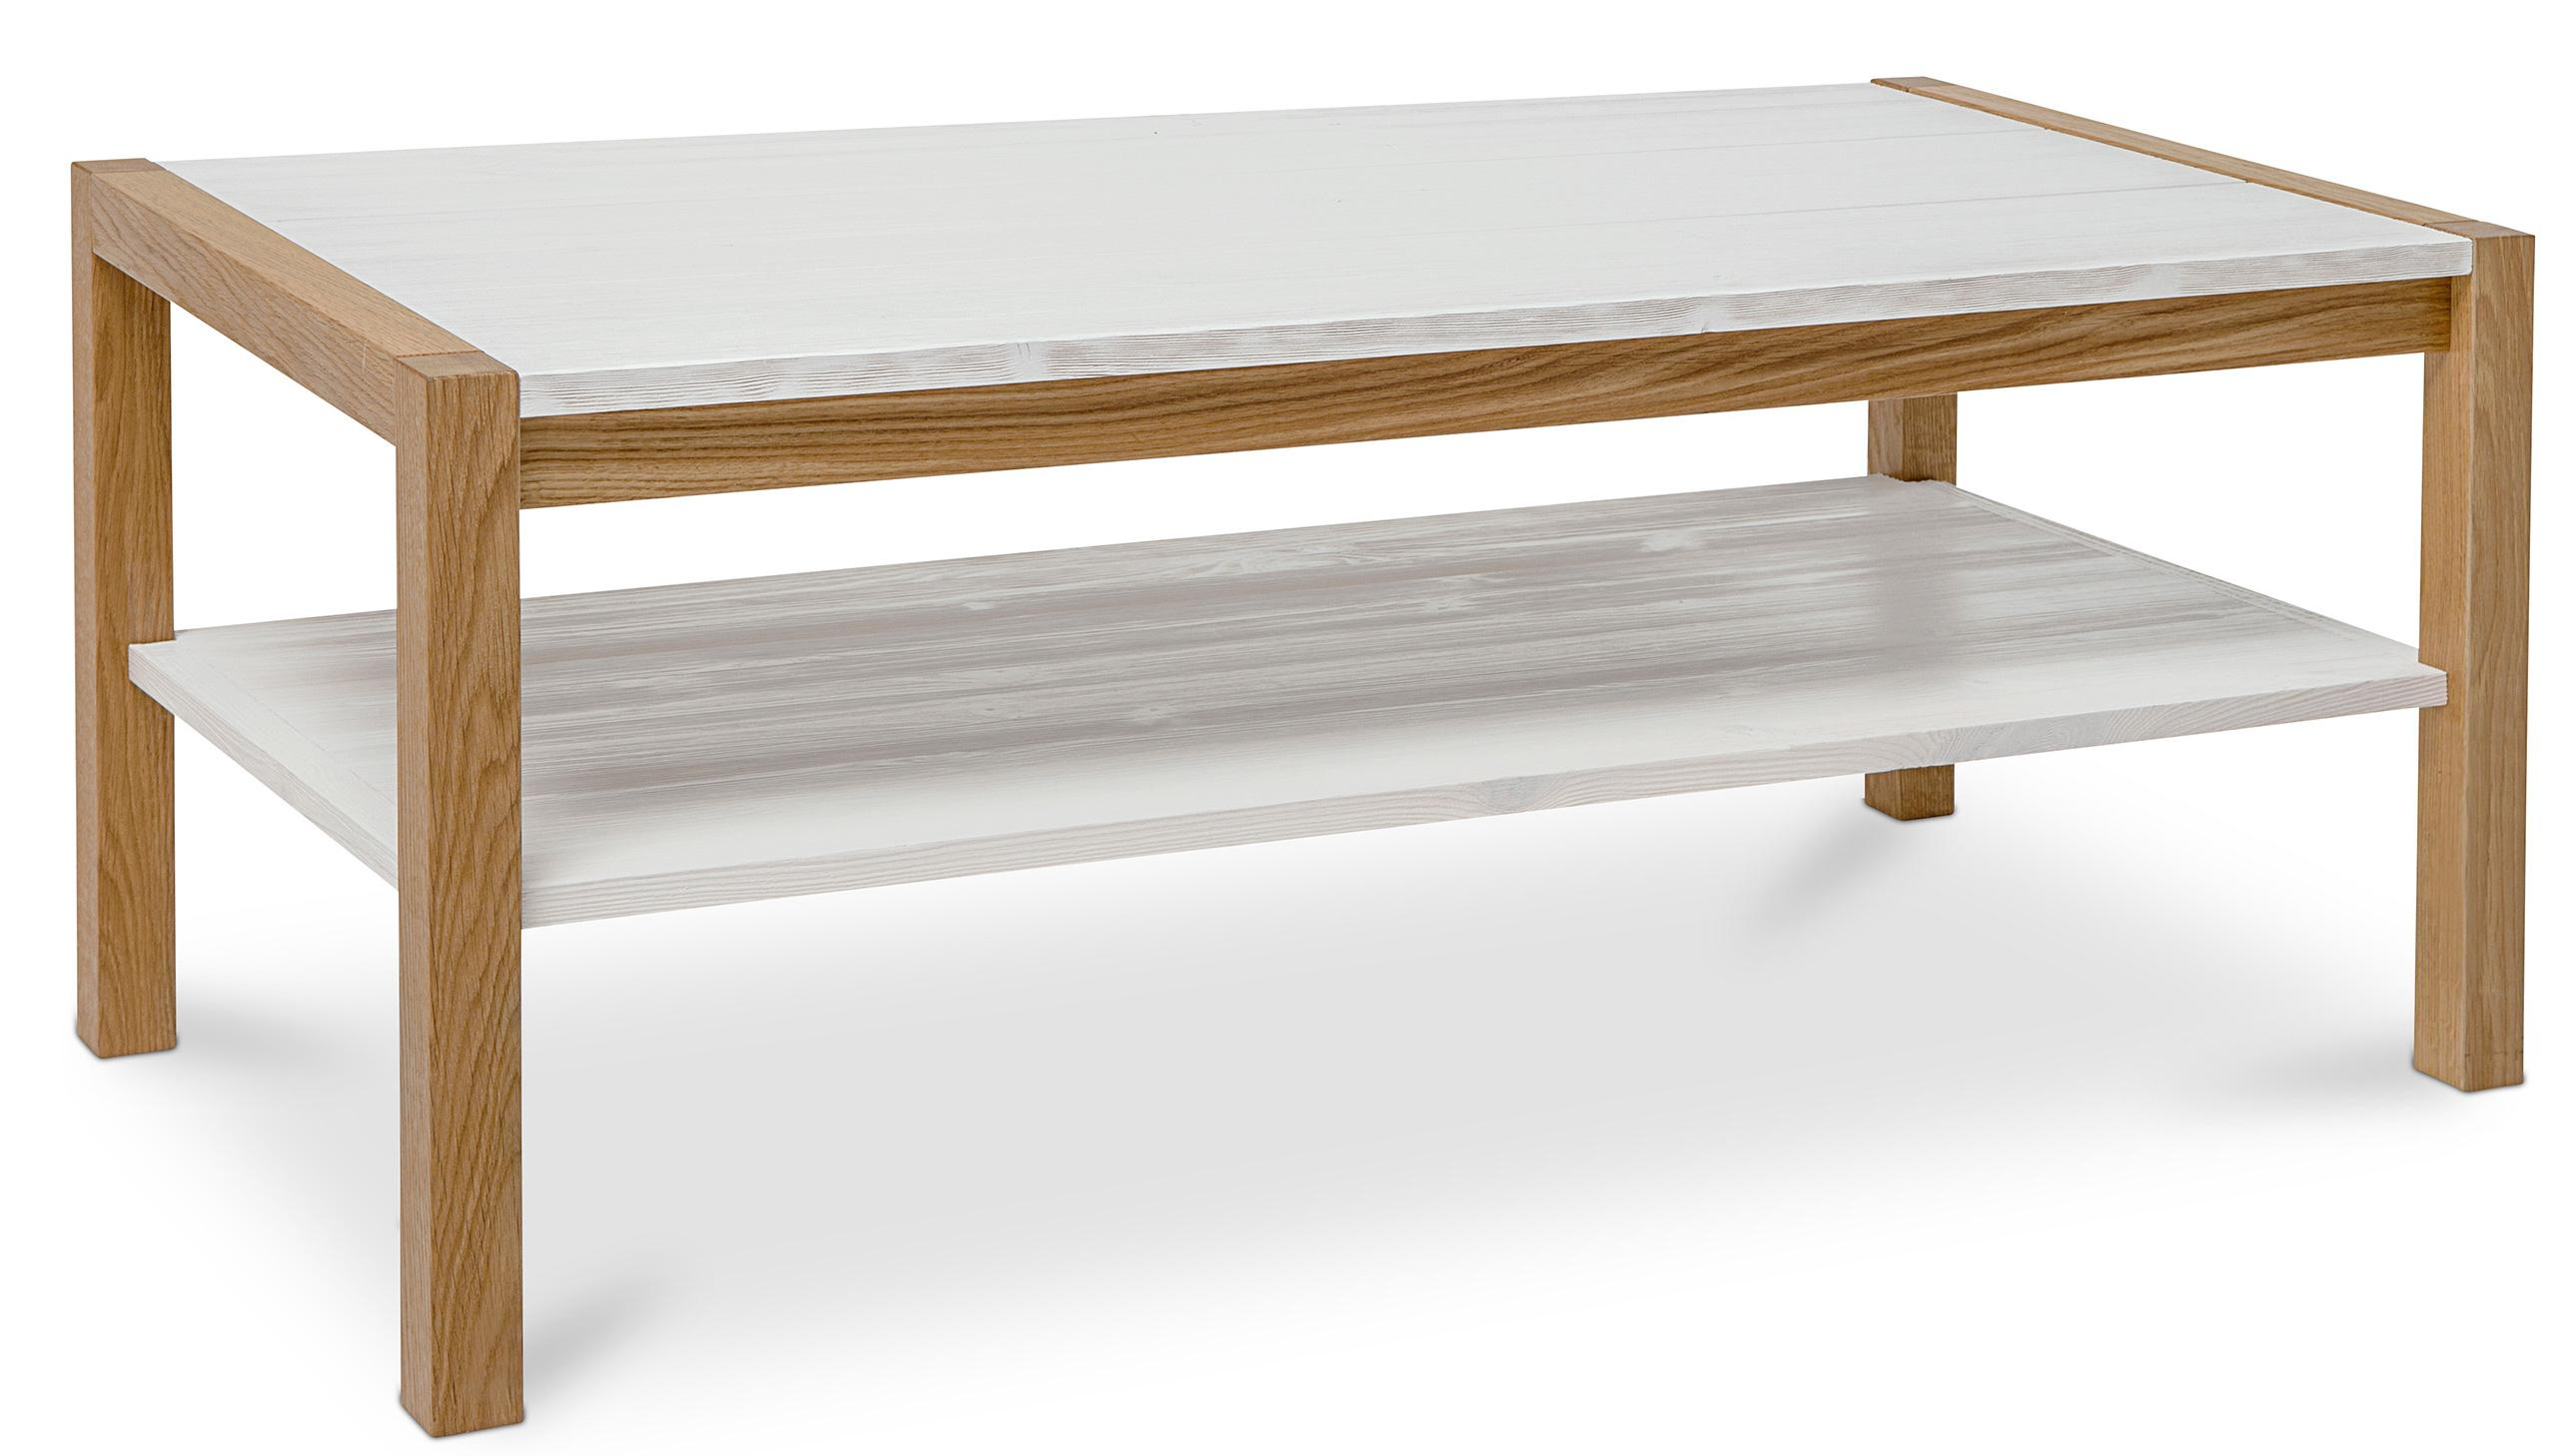 table basse scandinave blanc et pin massif karli. Black Bedroom Furniture Sets. Home Design Ideas